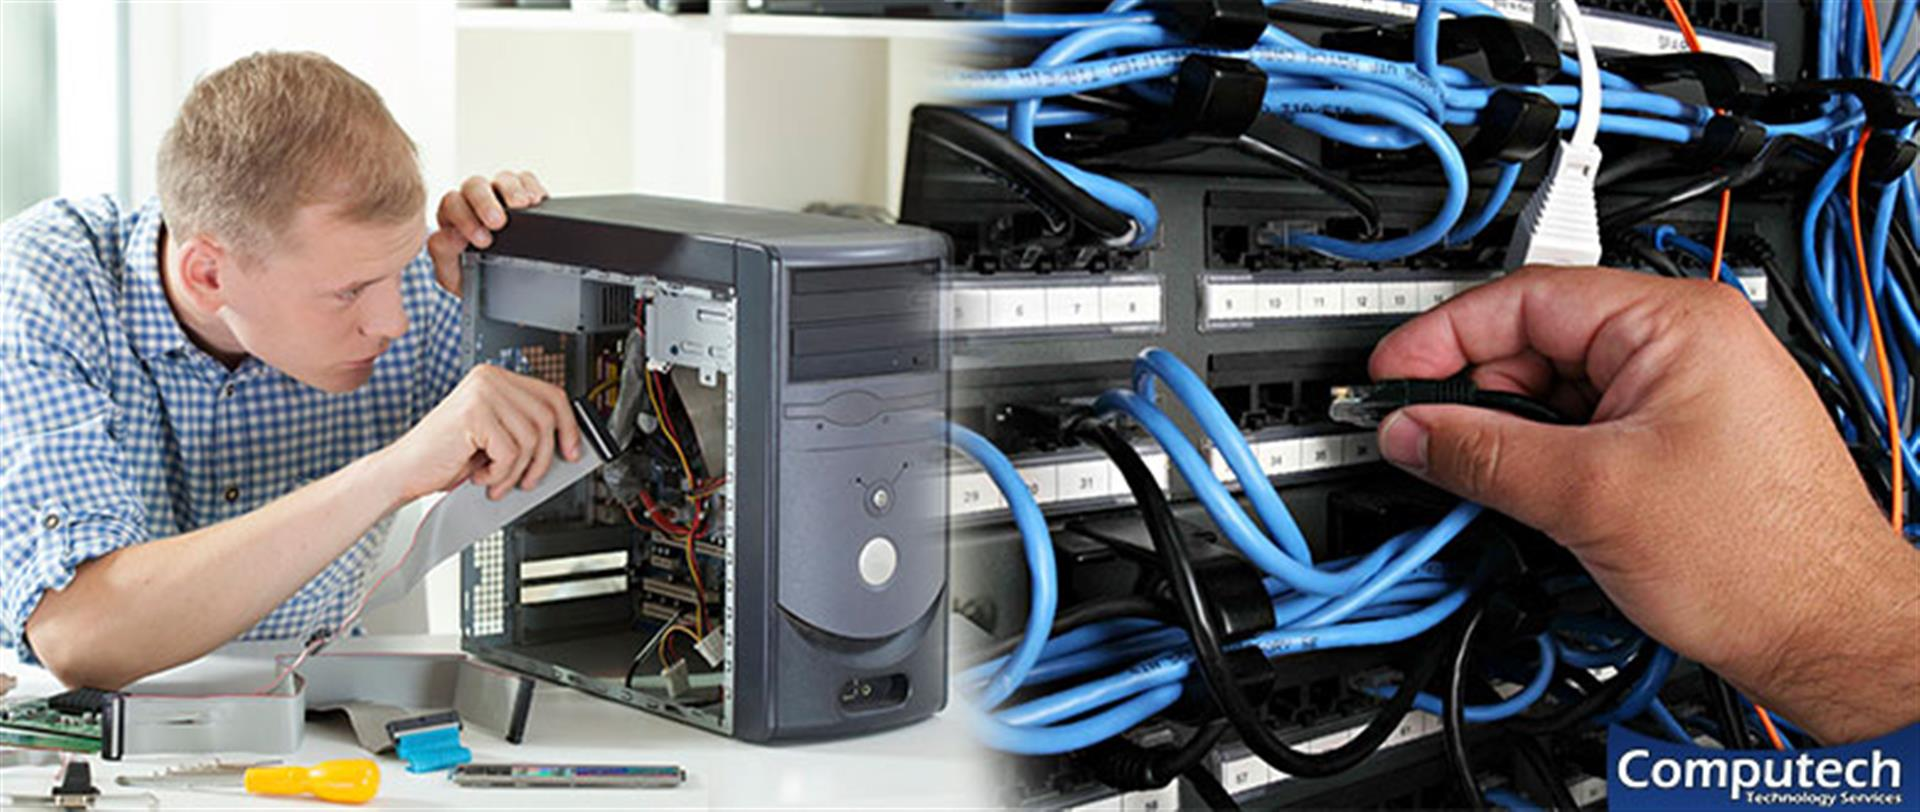 Springerville Arizona On Site Computer PC & Printer Repairs, Networks, Telecom Voice and High Speed Data Low Voltage Cabling Solutions